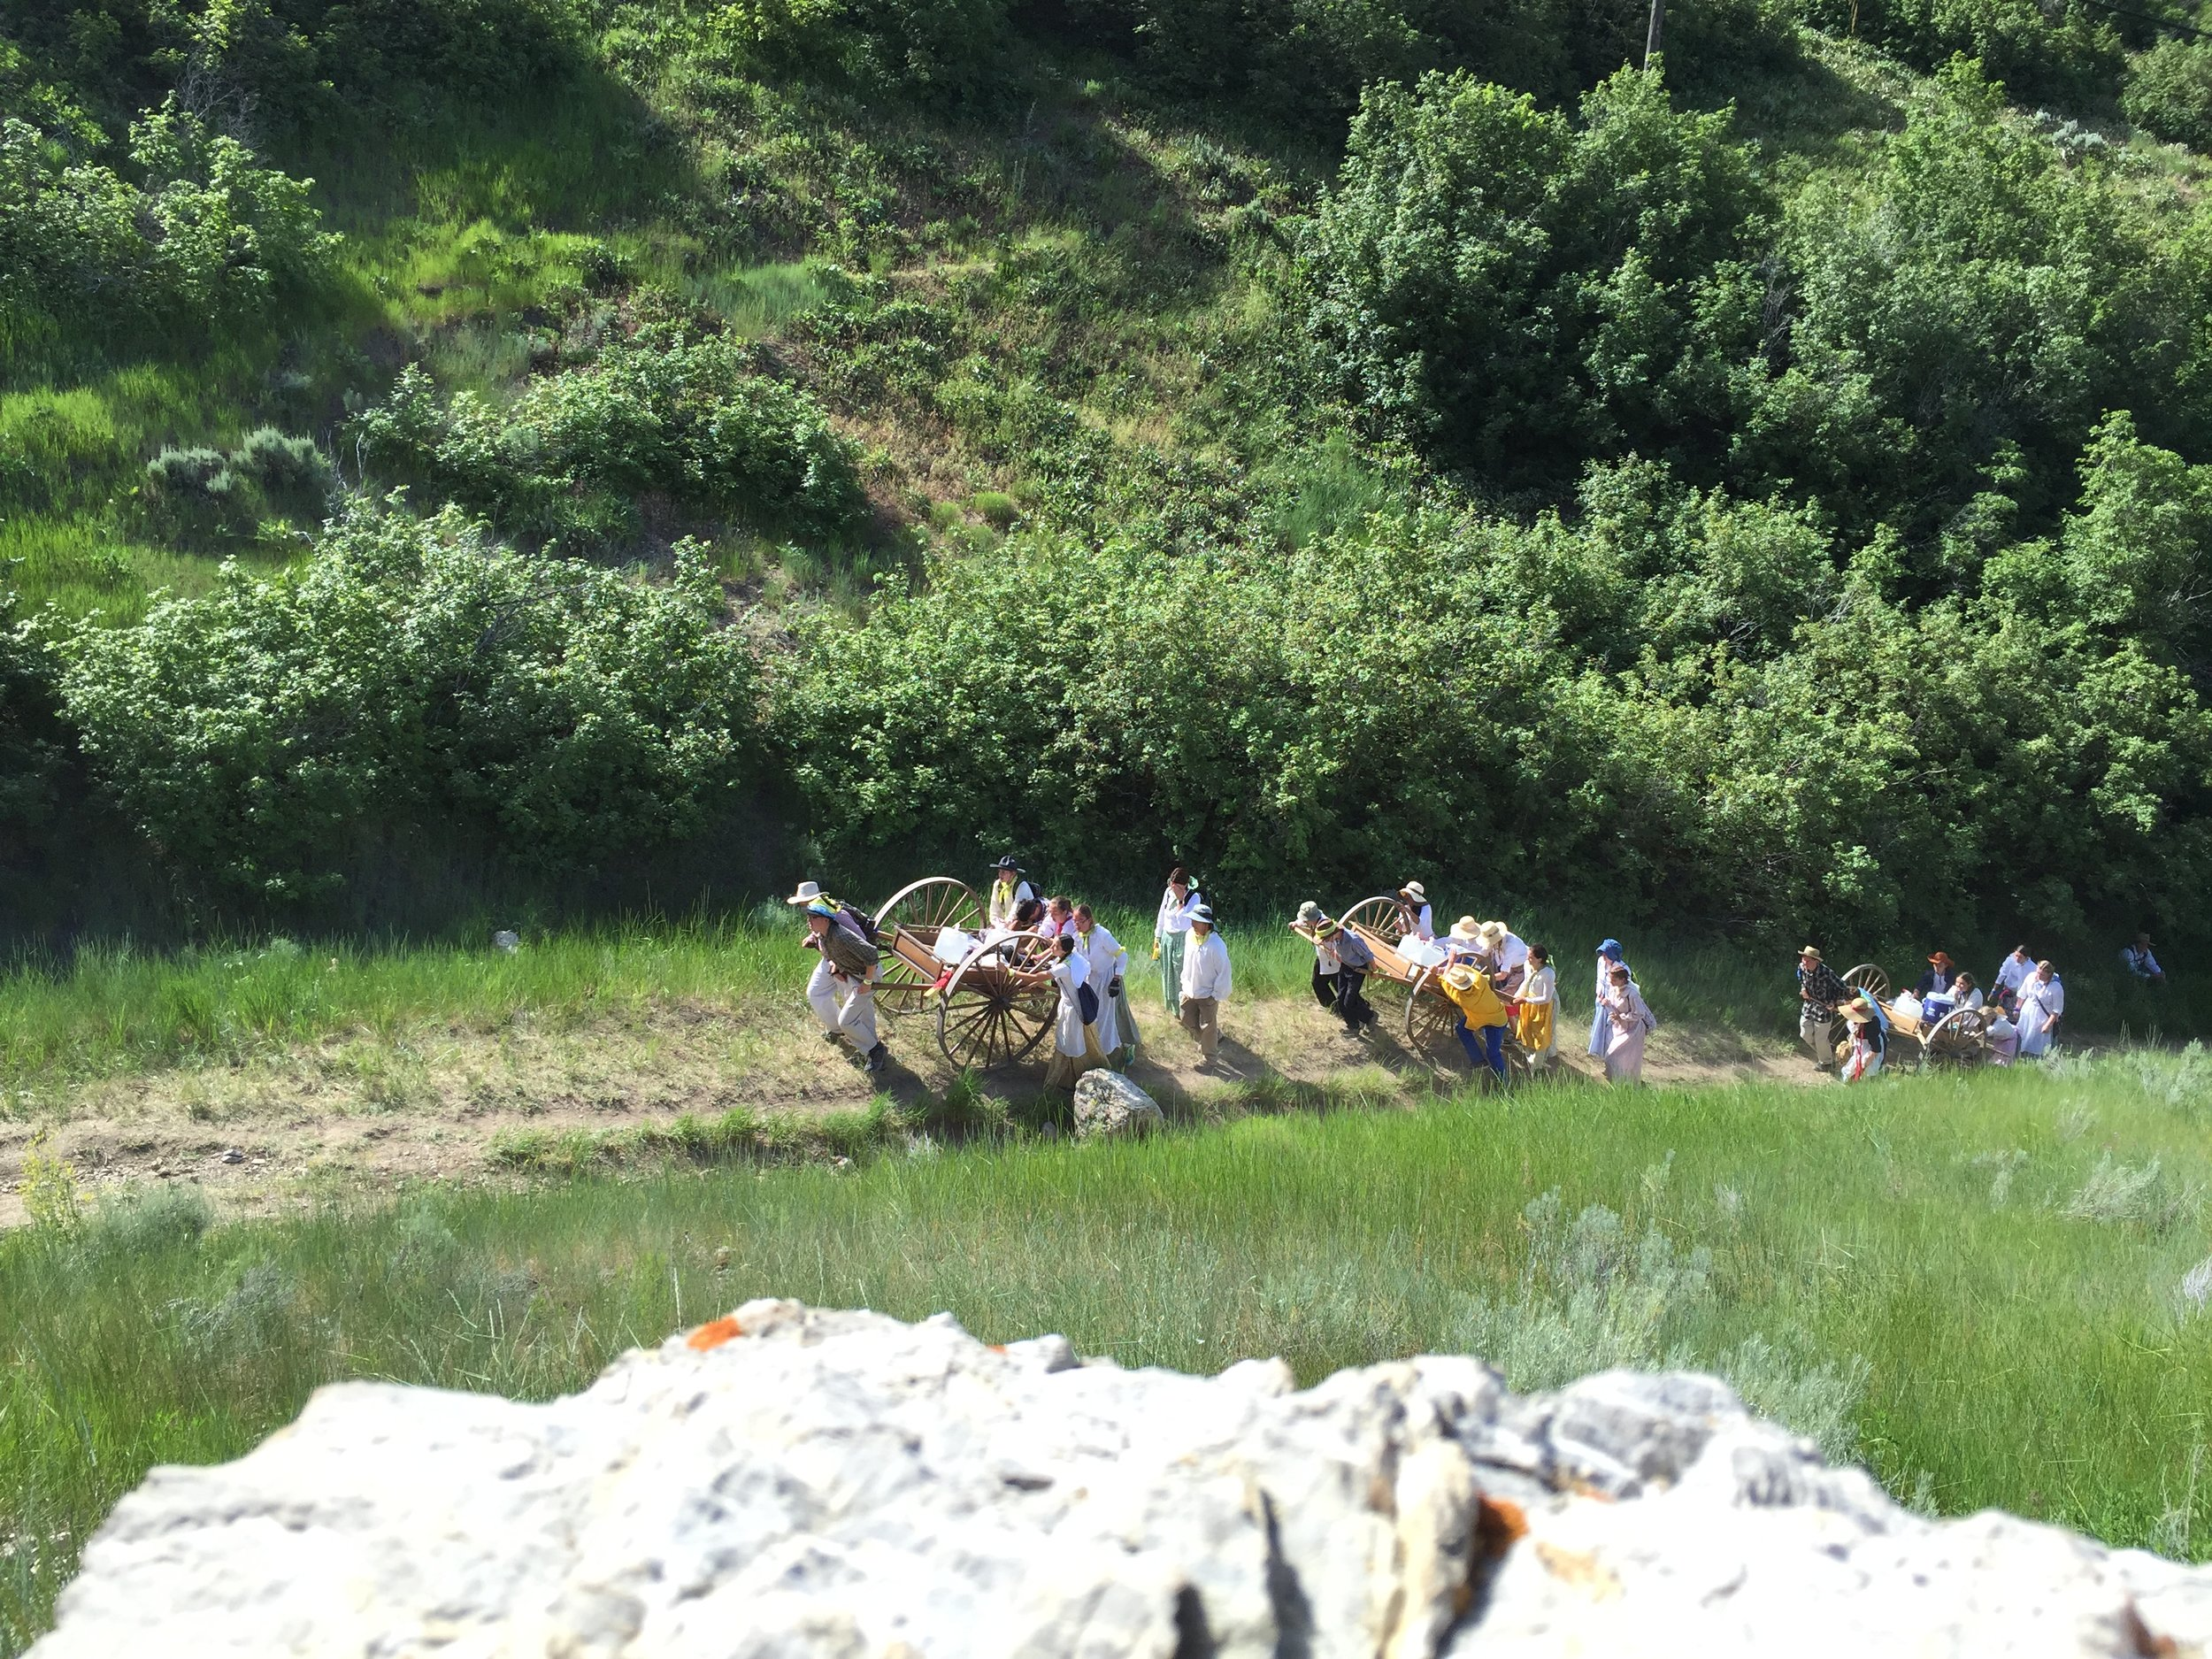 Handcart day trek  One of the most popular and rewarding experiences the Park offers is our Day Trek. Day Trekkers will begin early, end in the evening, and have lots of fun in between.